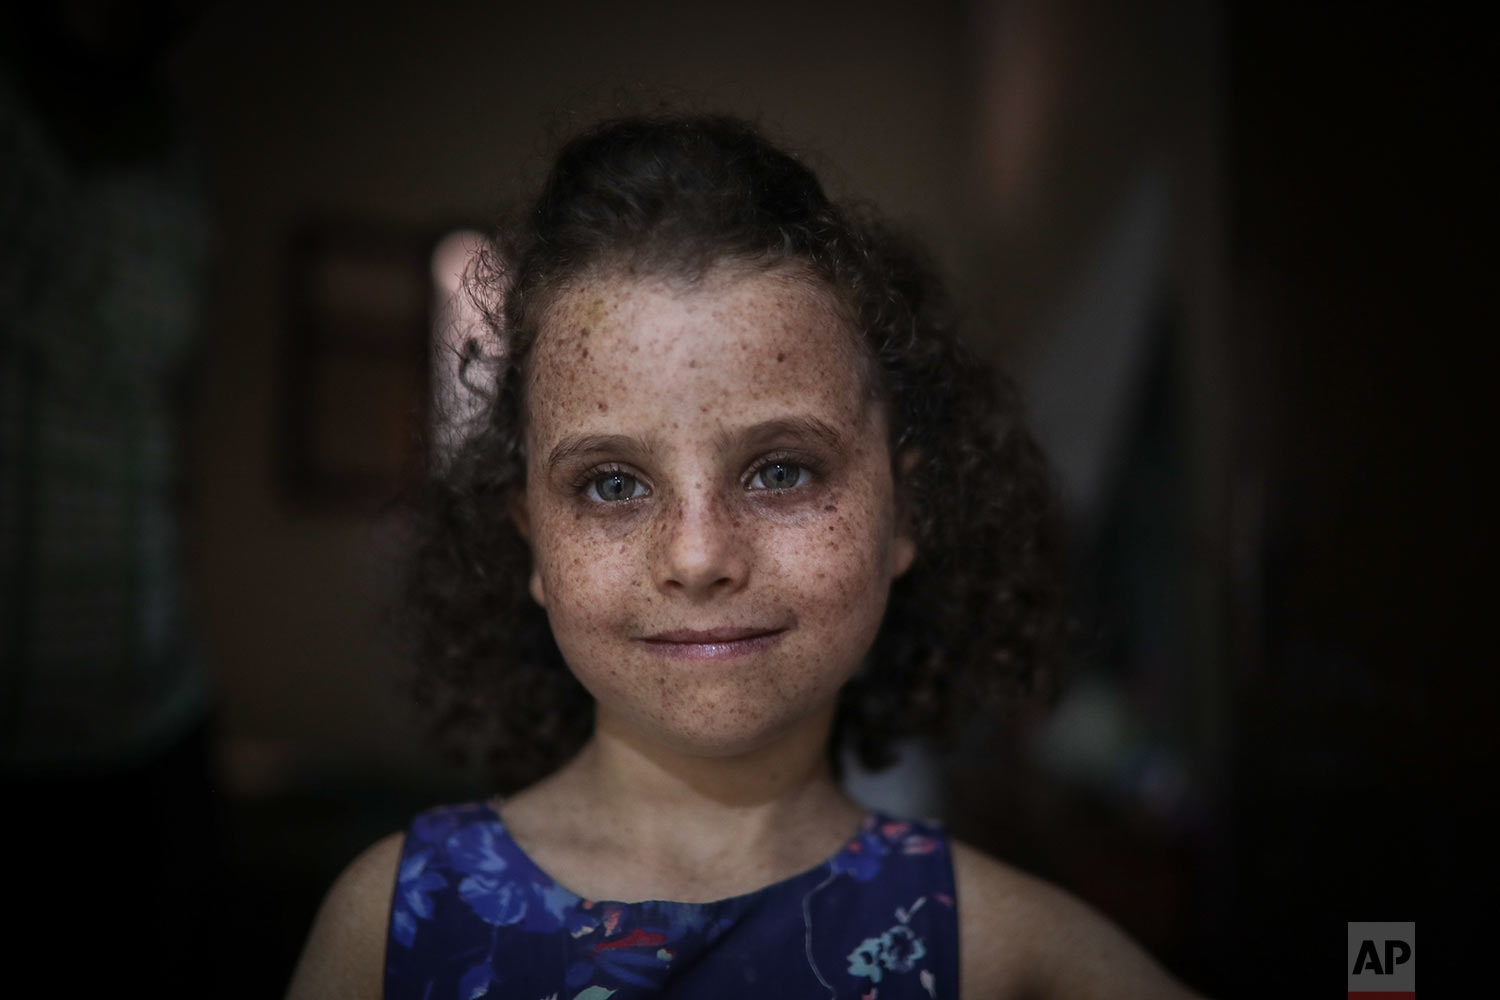 Romaisae, 6, who is affected by a rare disorder called xeroderma pigmentosum, or XP, poses for a portrait in her home in the town of Sale, near Rabat, Morocco, July 23, 2019. (AP Photo/Mosa'ab Elshamy)